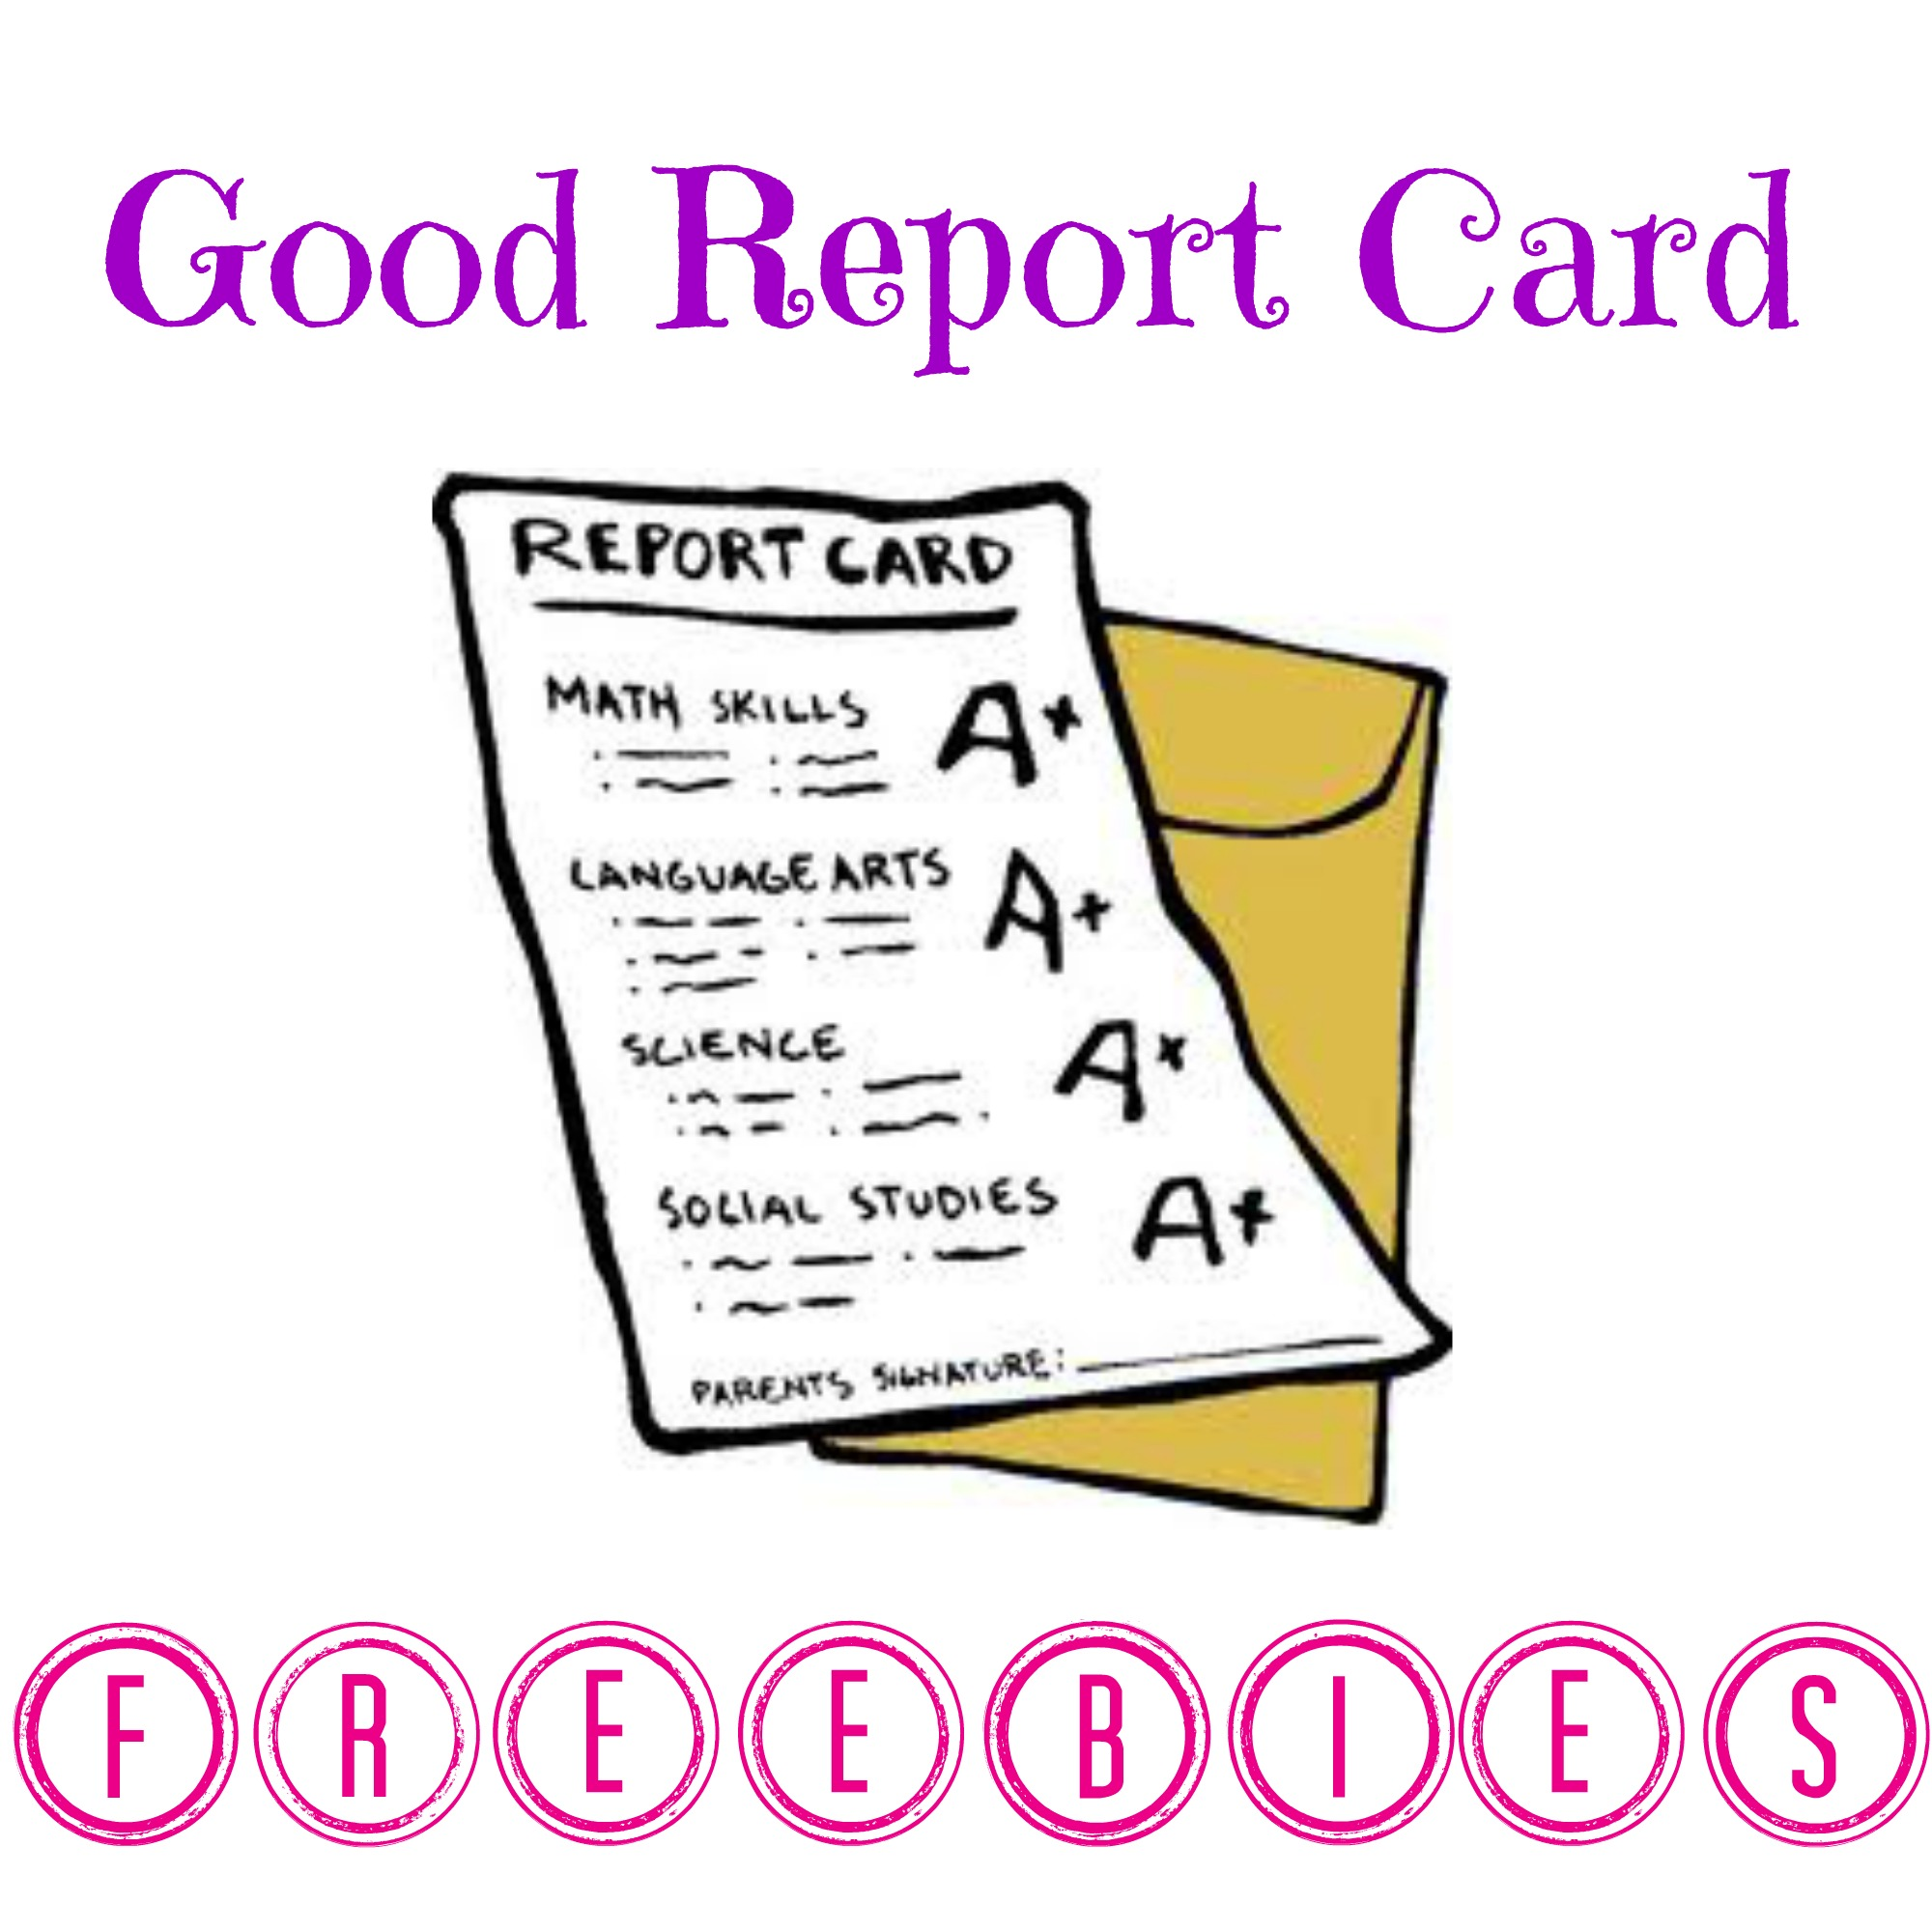 List Of Good Report Card Freebies